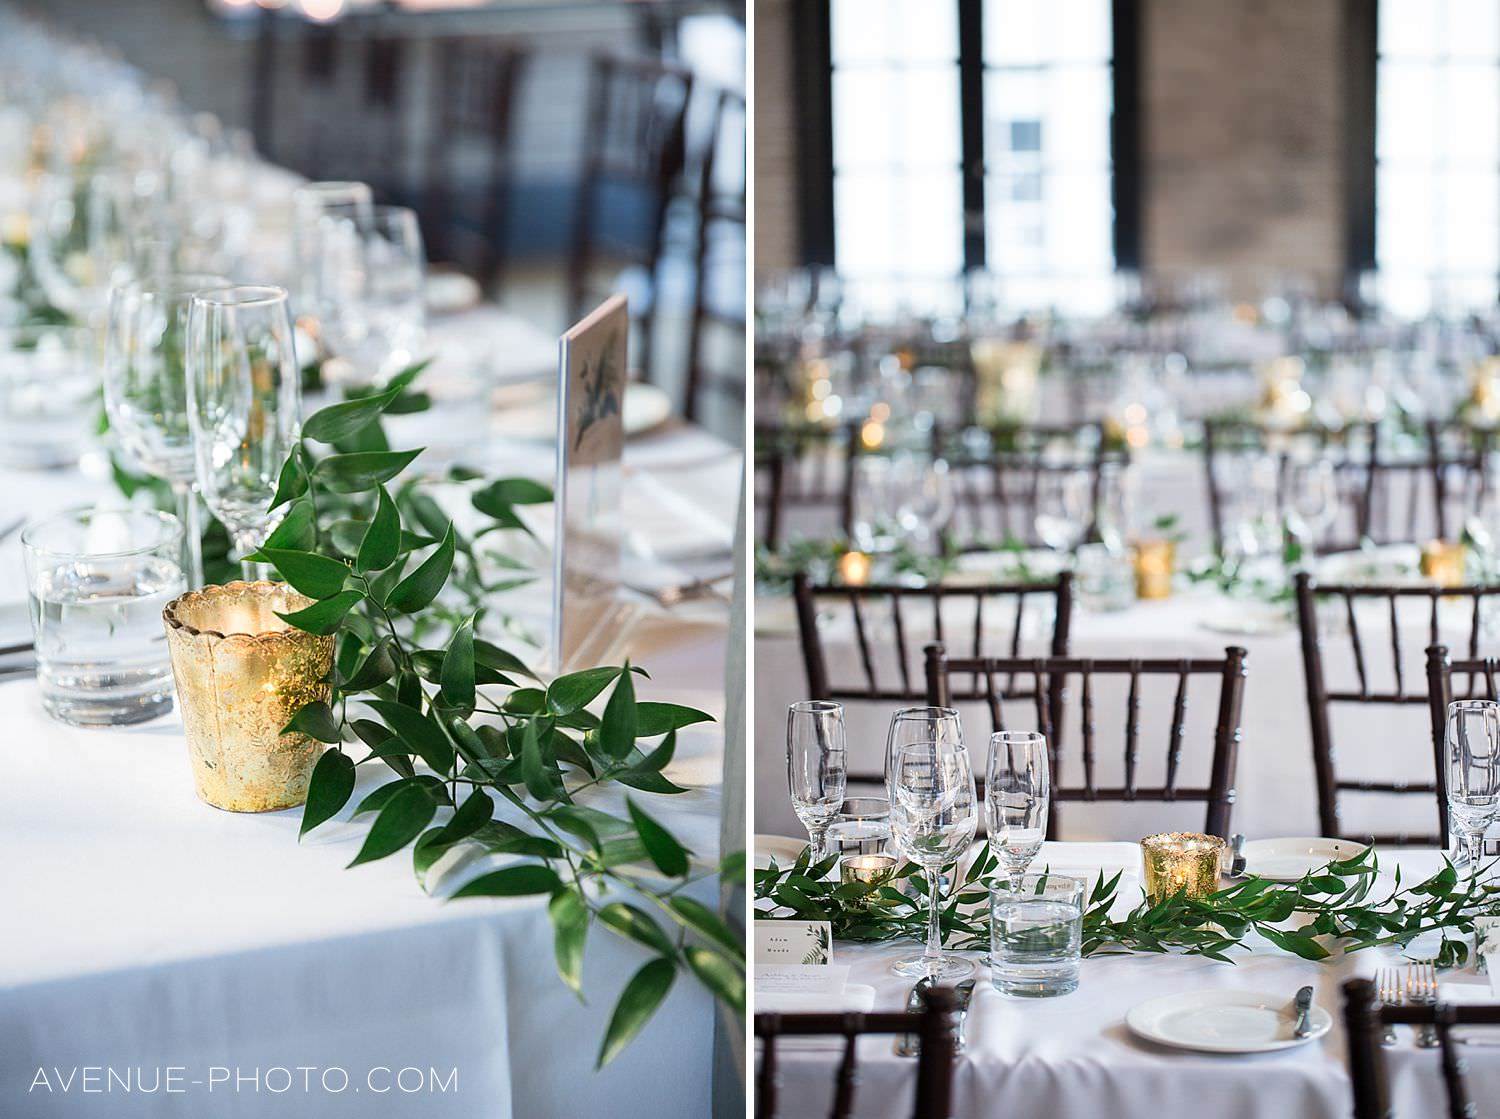 Storys building wedding, Specialize in Storys Building wedding photography in Toronto, Avenue Photo